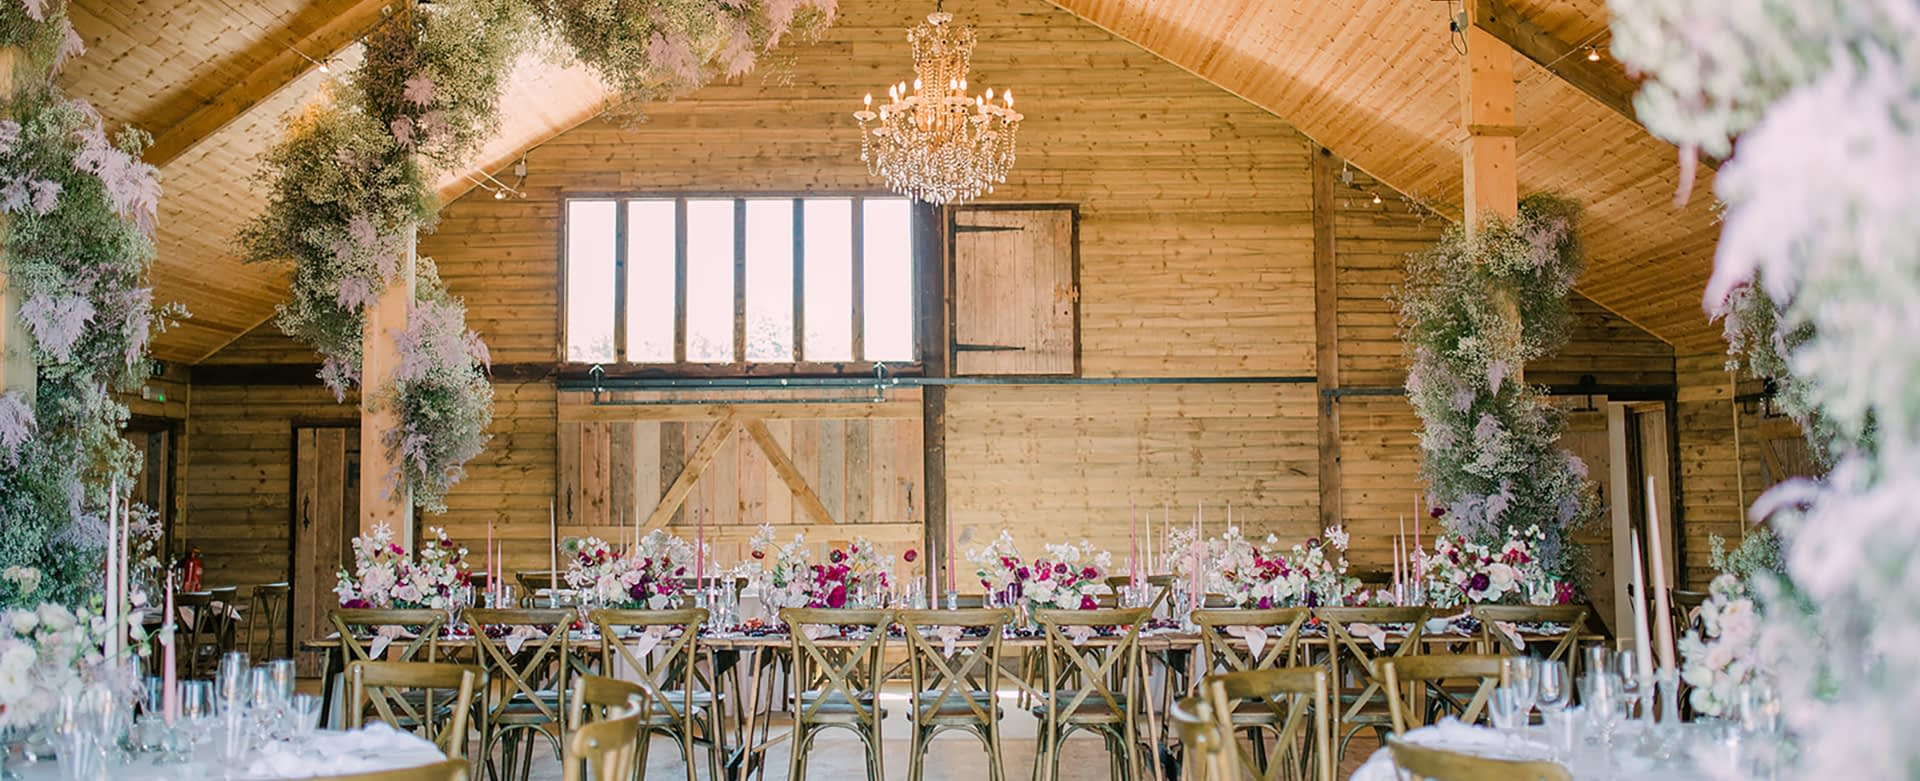 How to Plan a Sustainable, Eco-Friendly Wedding